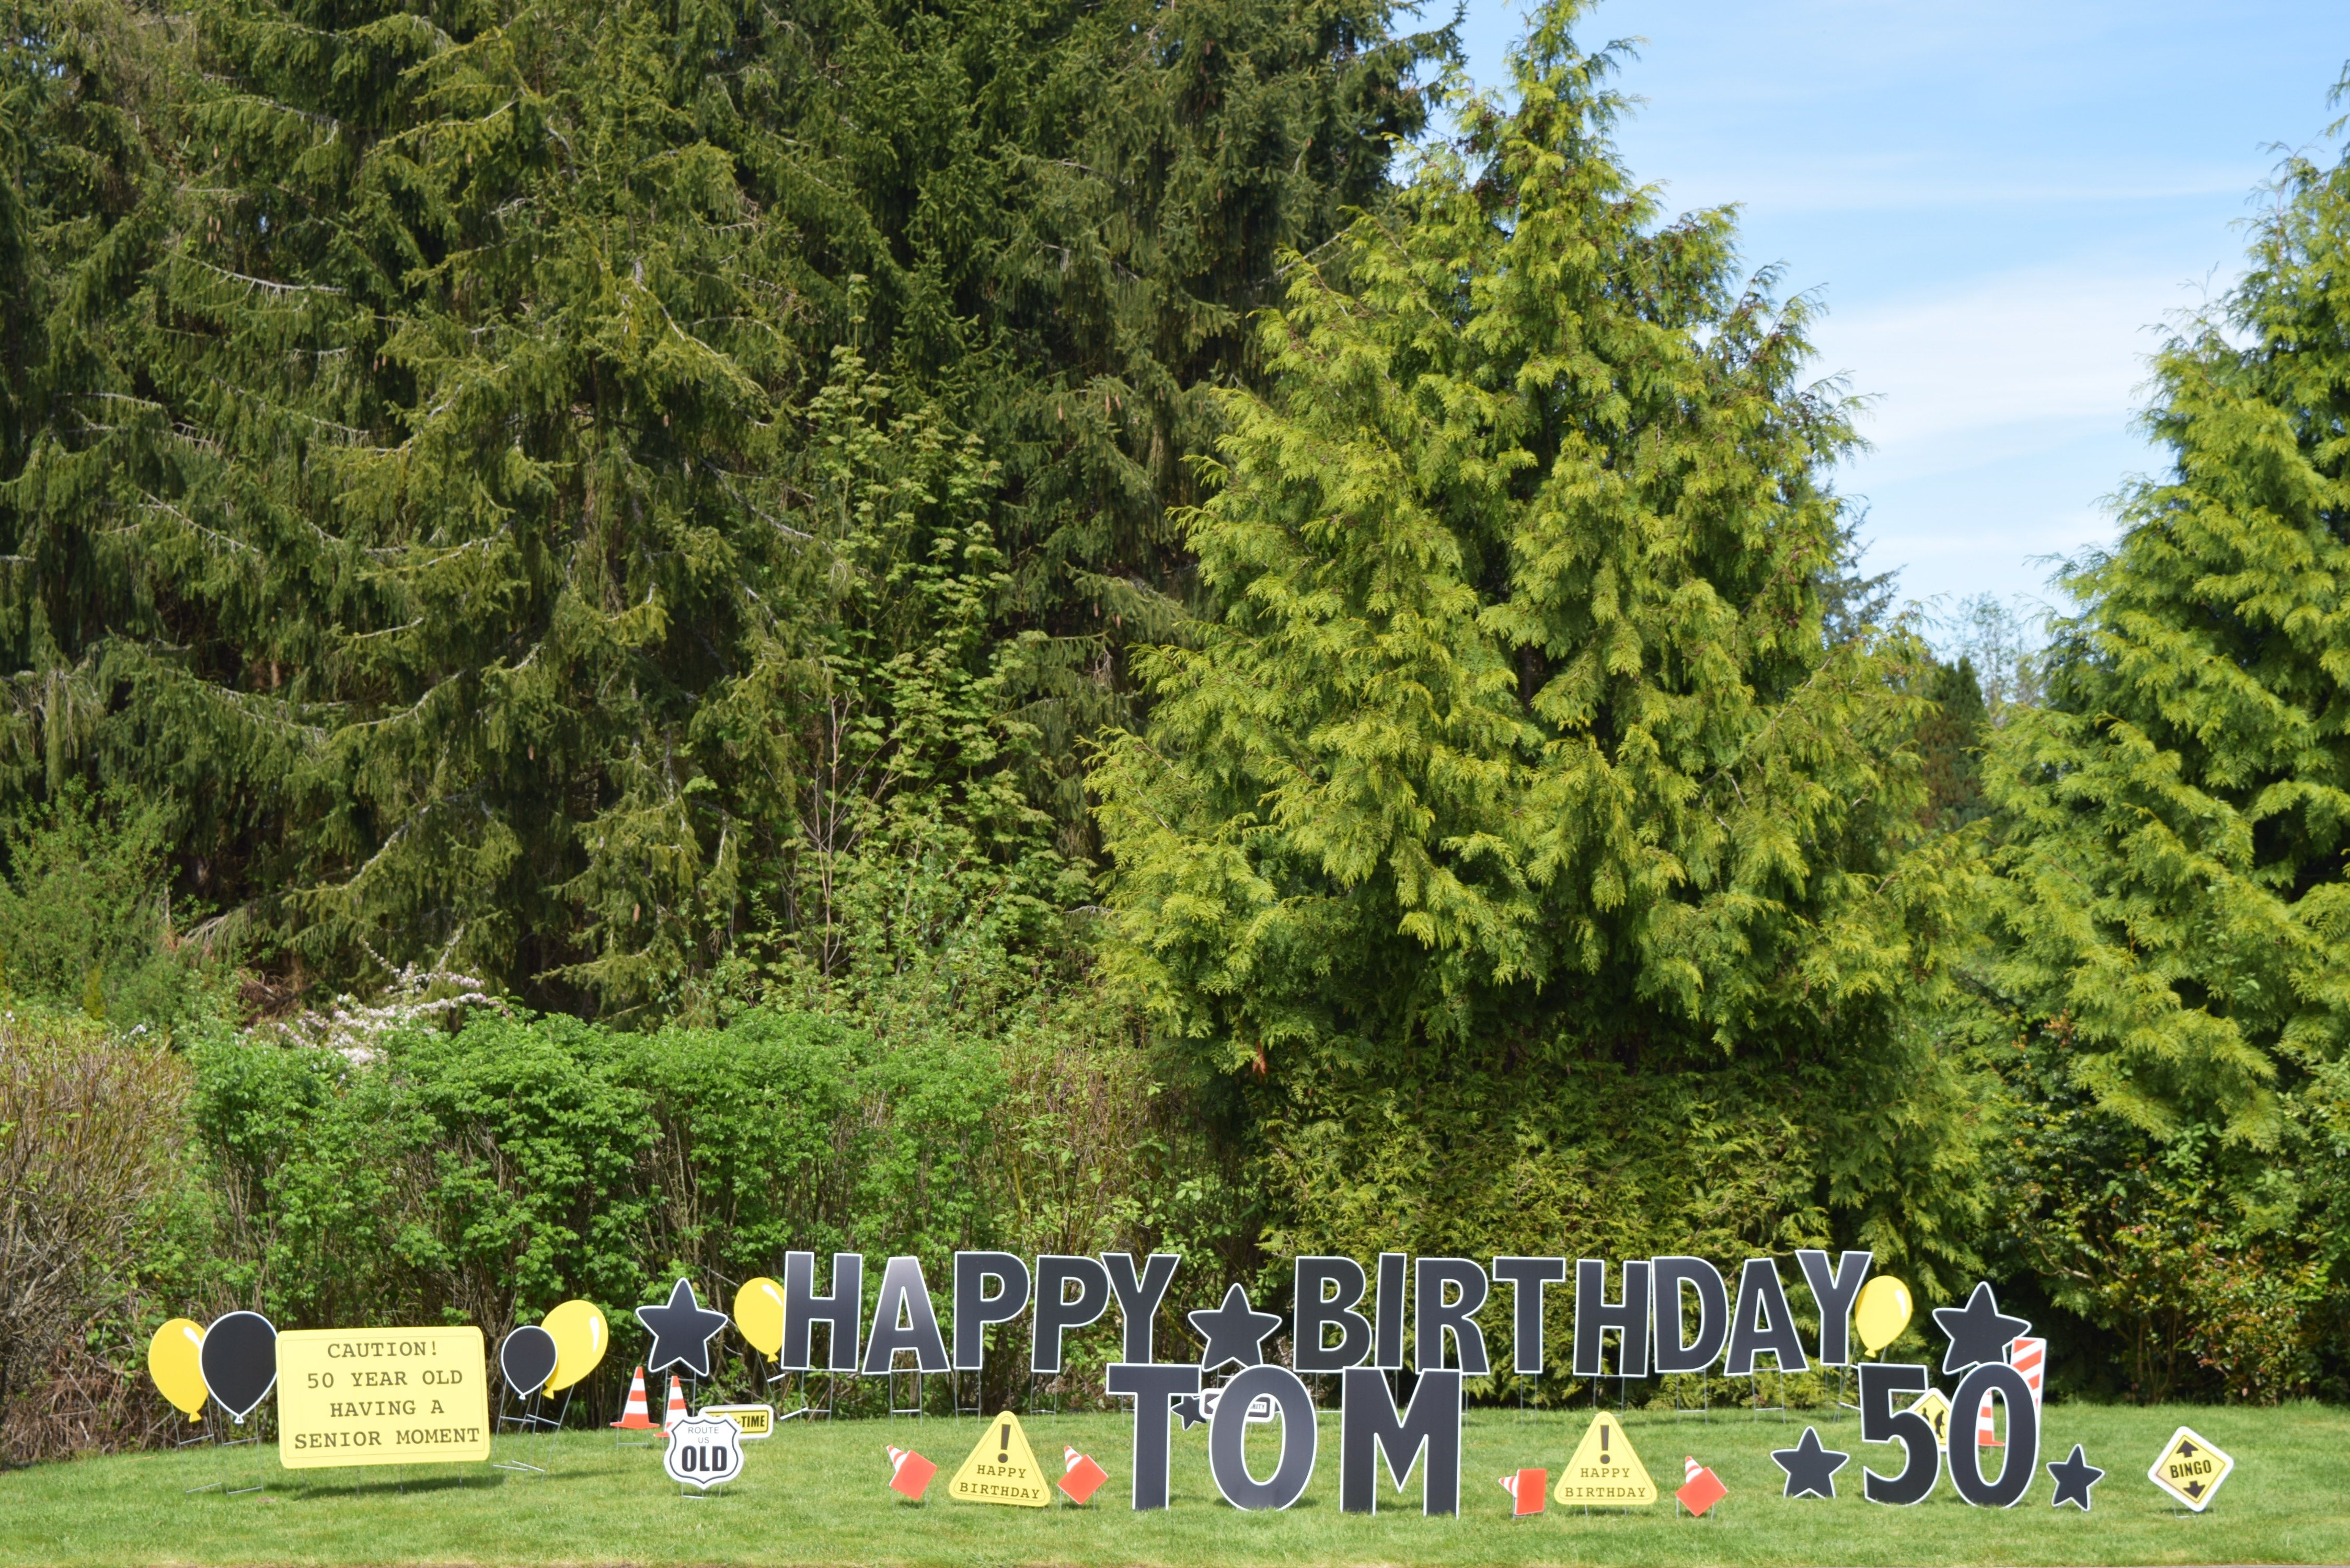 Funny 50th Birthday Party Yard Signs Humorous Decorations For Your Front Lawn We Deliver To Bothell Woodinville Kenmore Lynnwood Everett